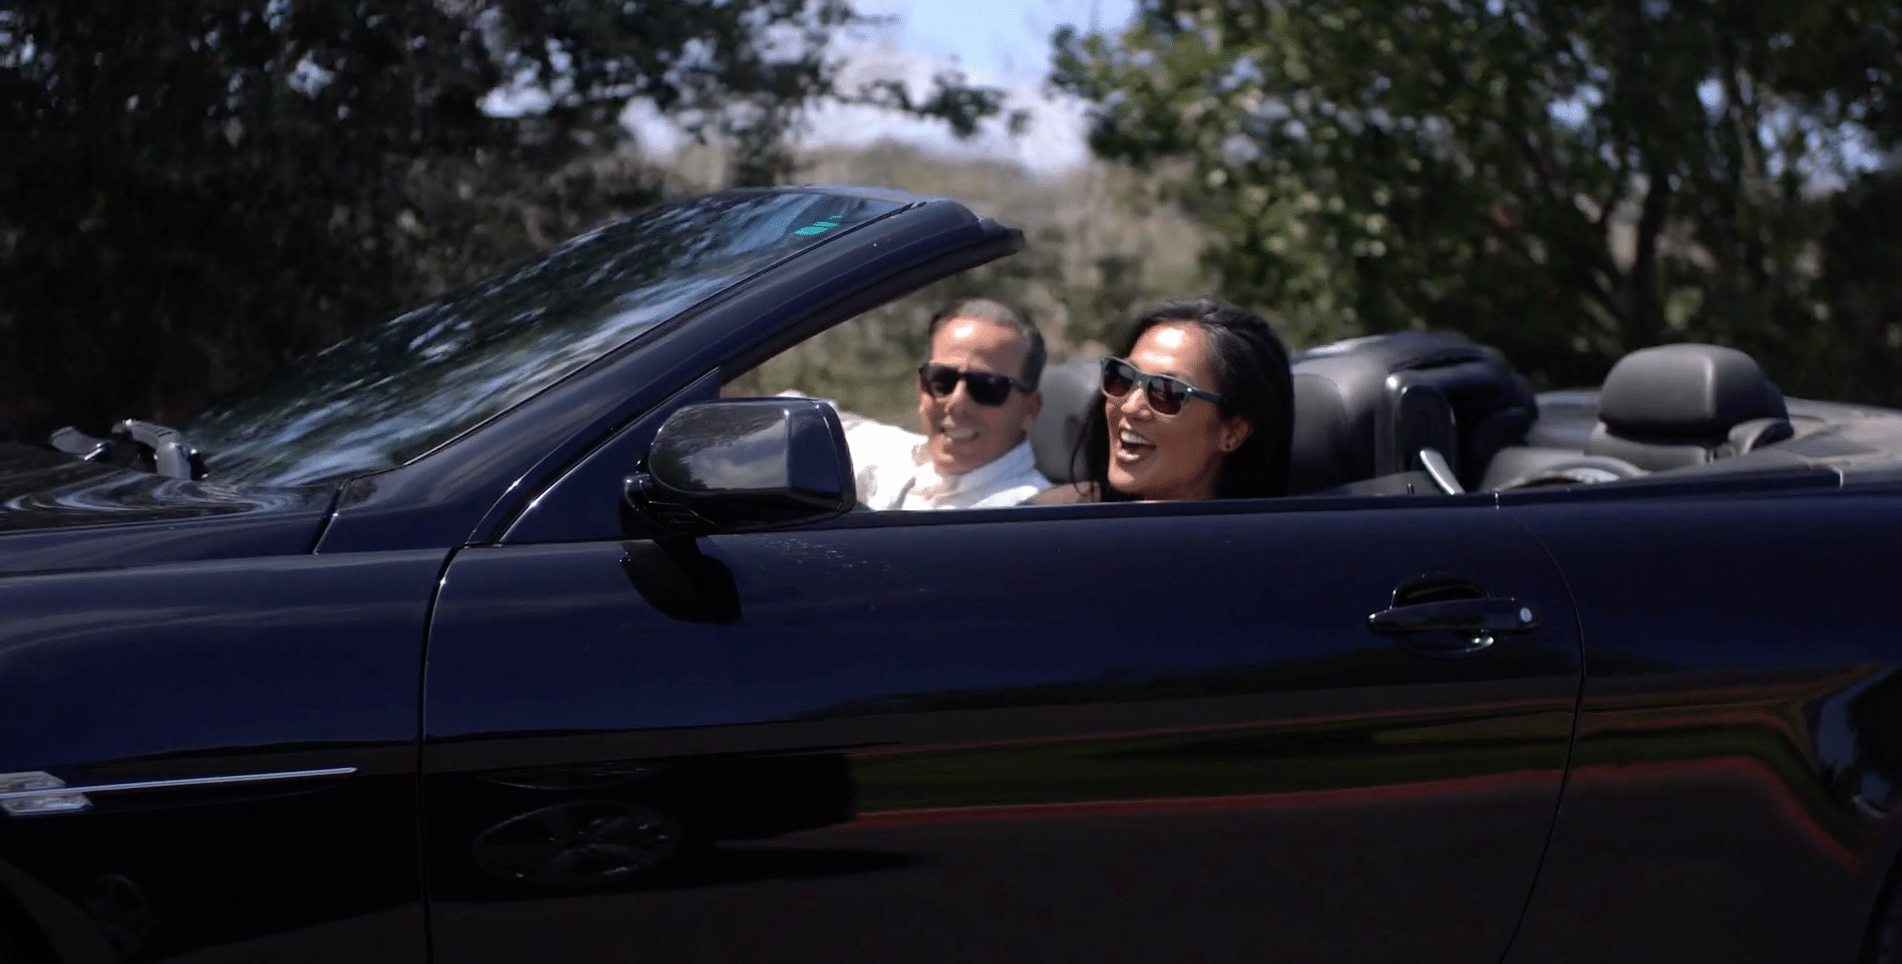 Hydred and Richie in convertible